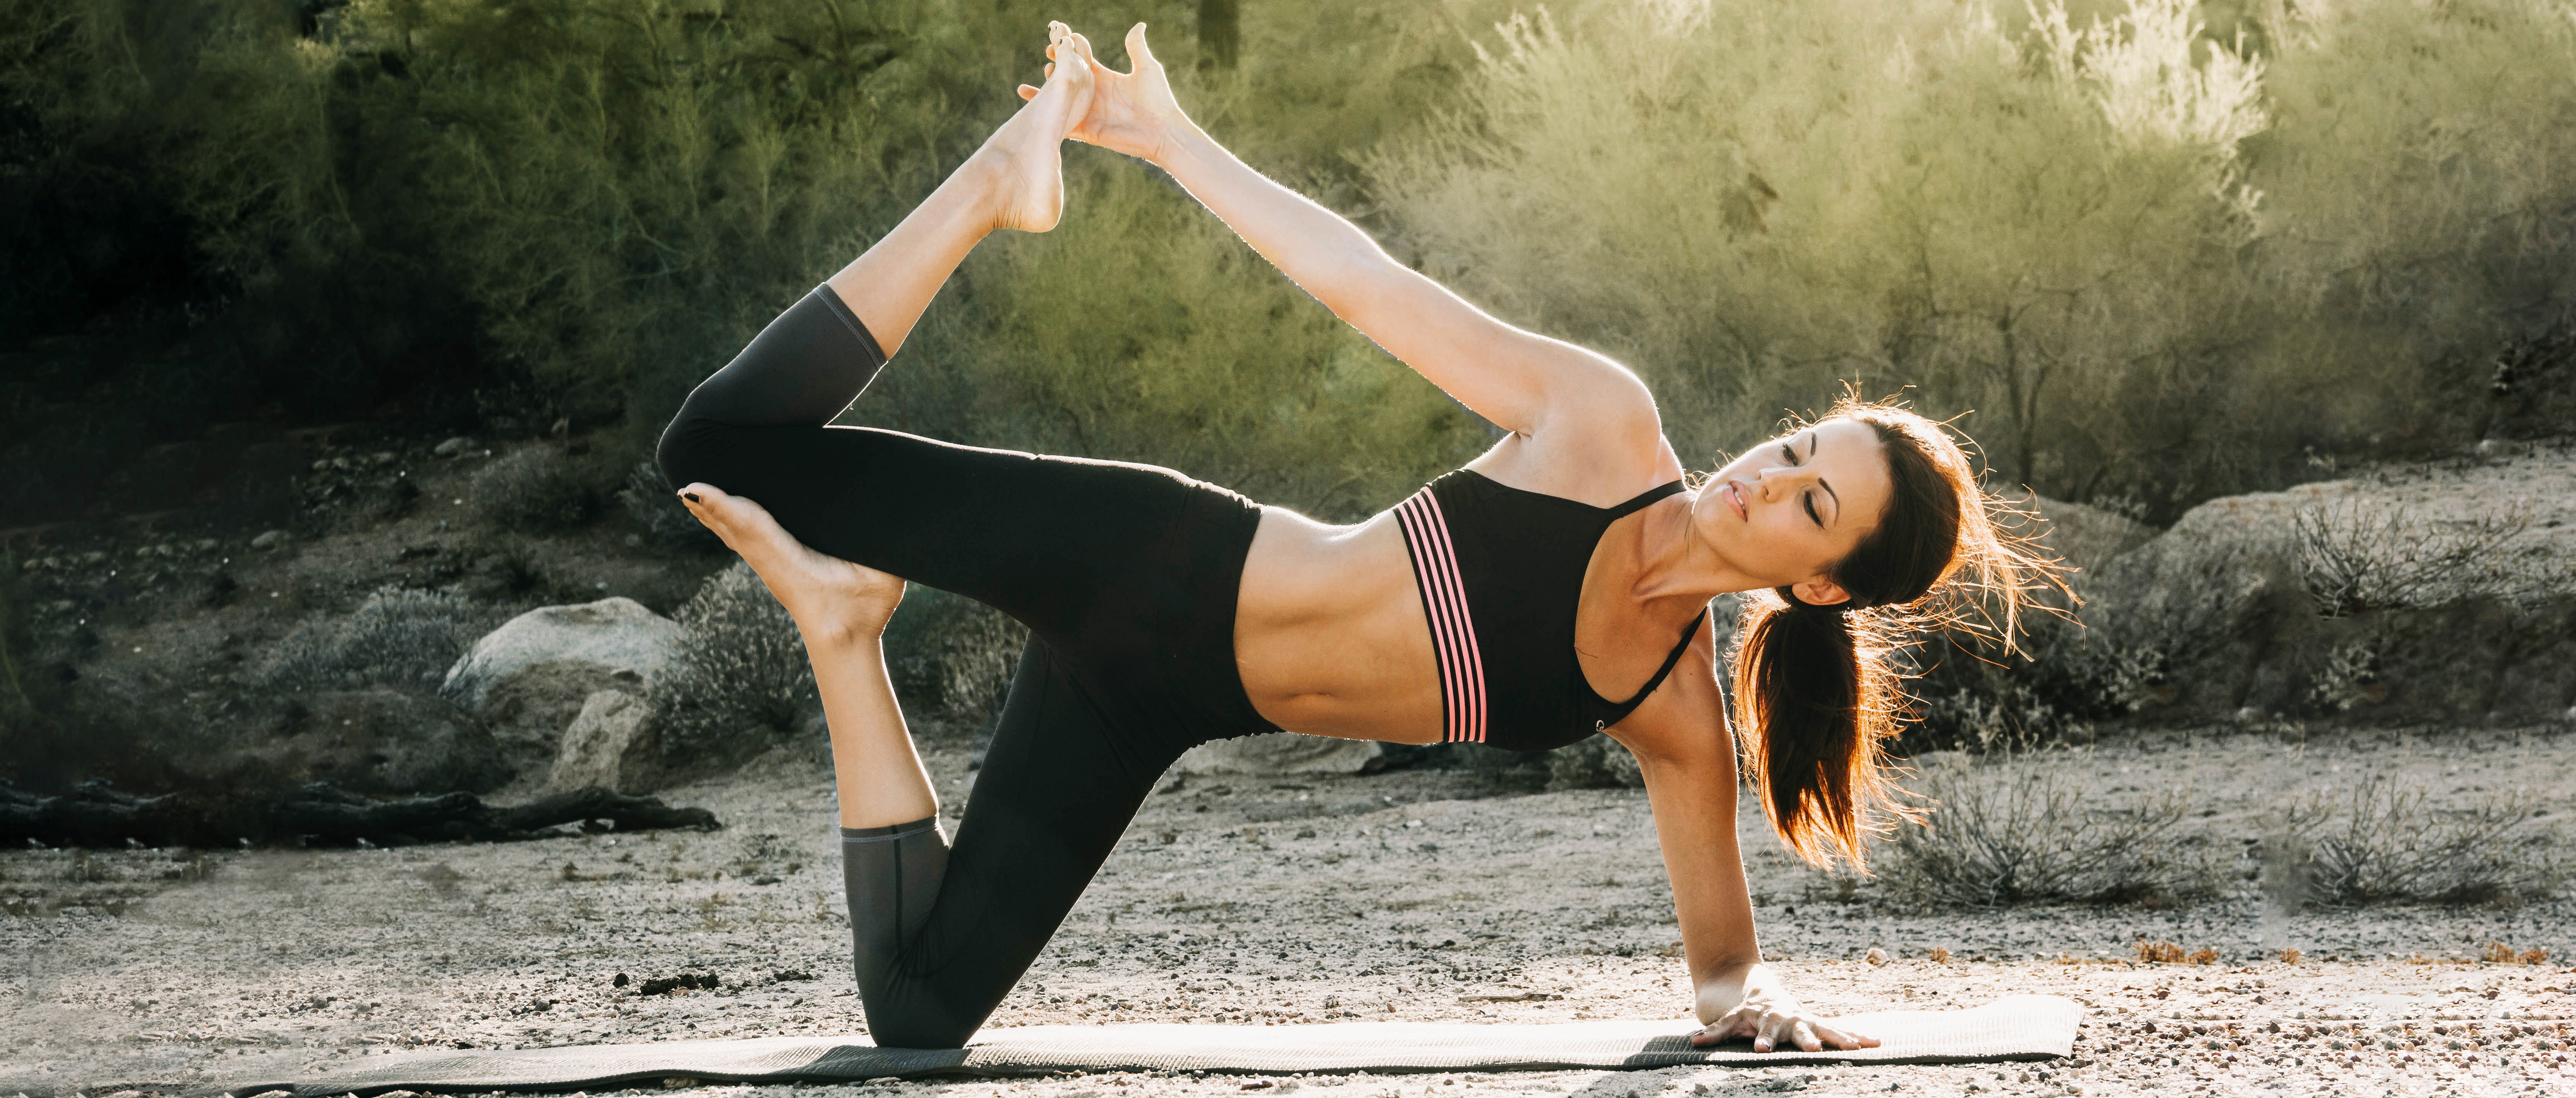 Fall into Fitness: The Tips You Need to Stay Motivated This Season